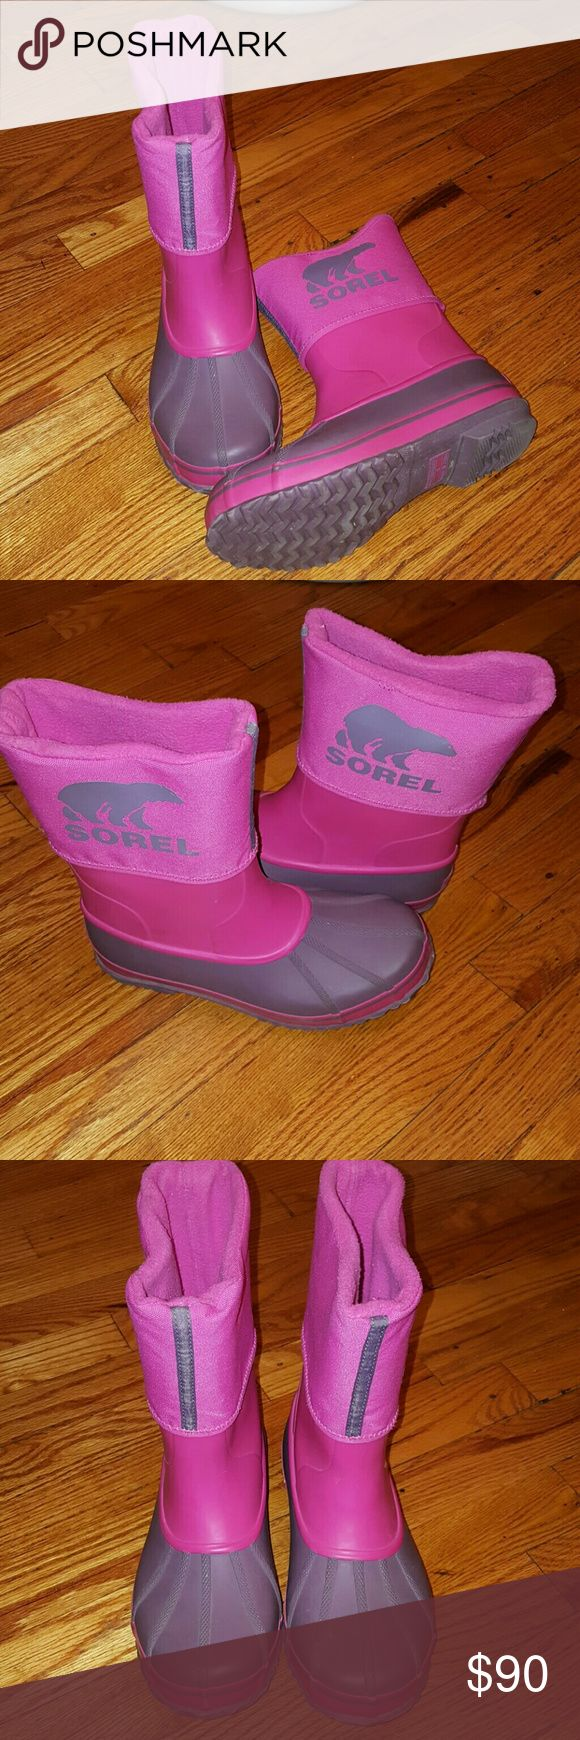 Sorel rainboots Very cute Sorel snow/rainboots fleece lined, cuffed with Sorel logo on side of each boots. Super comfy hardly worn. Sorel Shoes Rain & Snow Boots